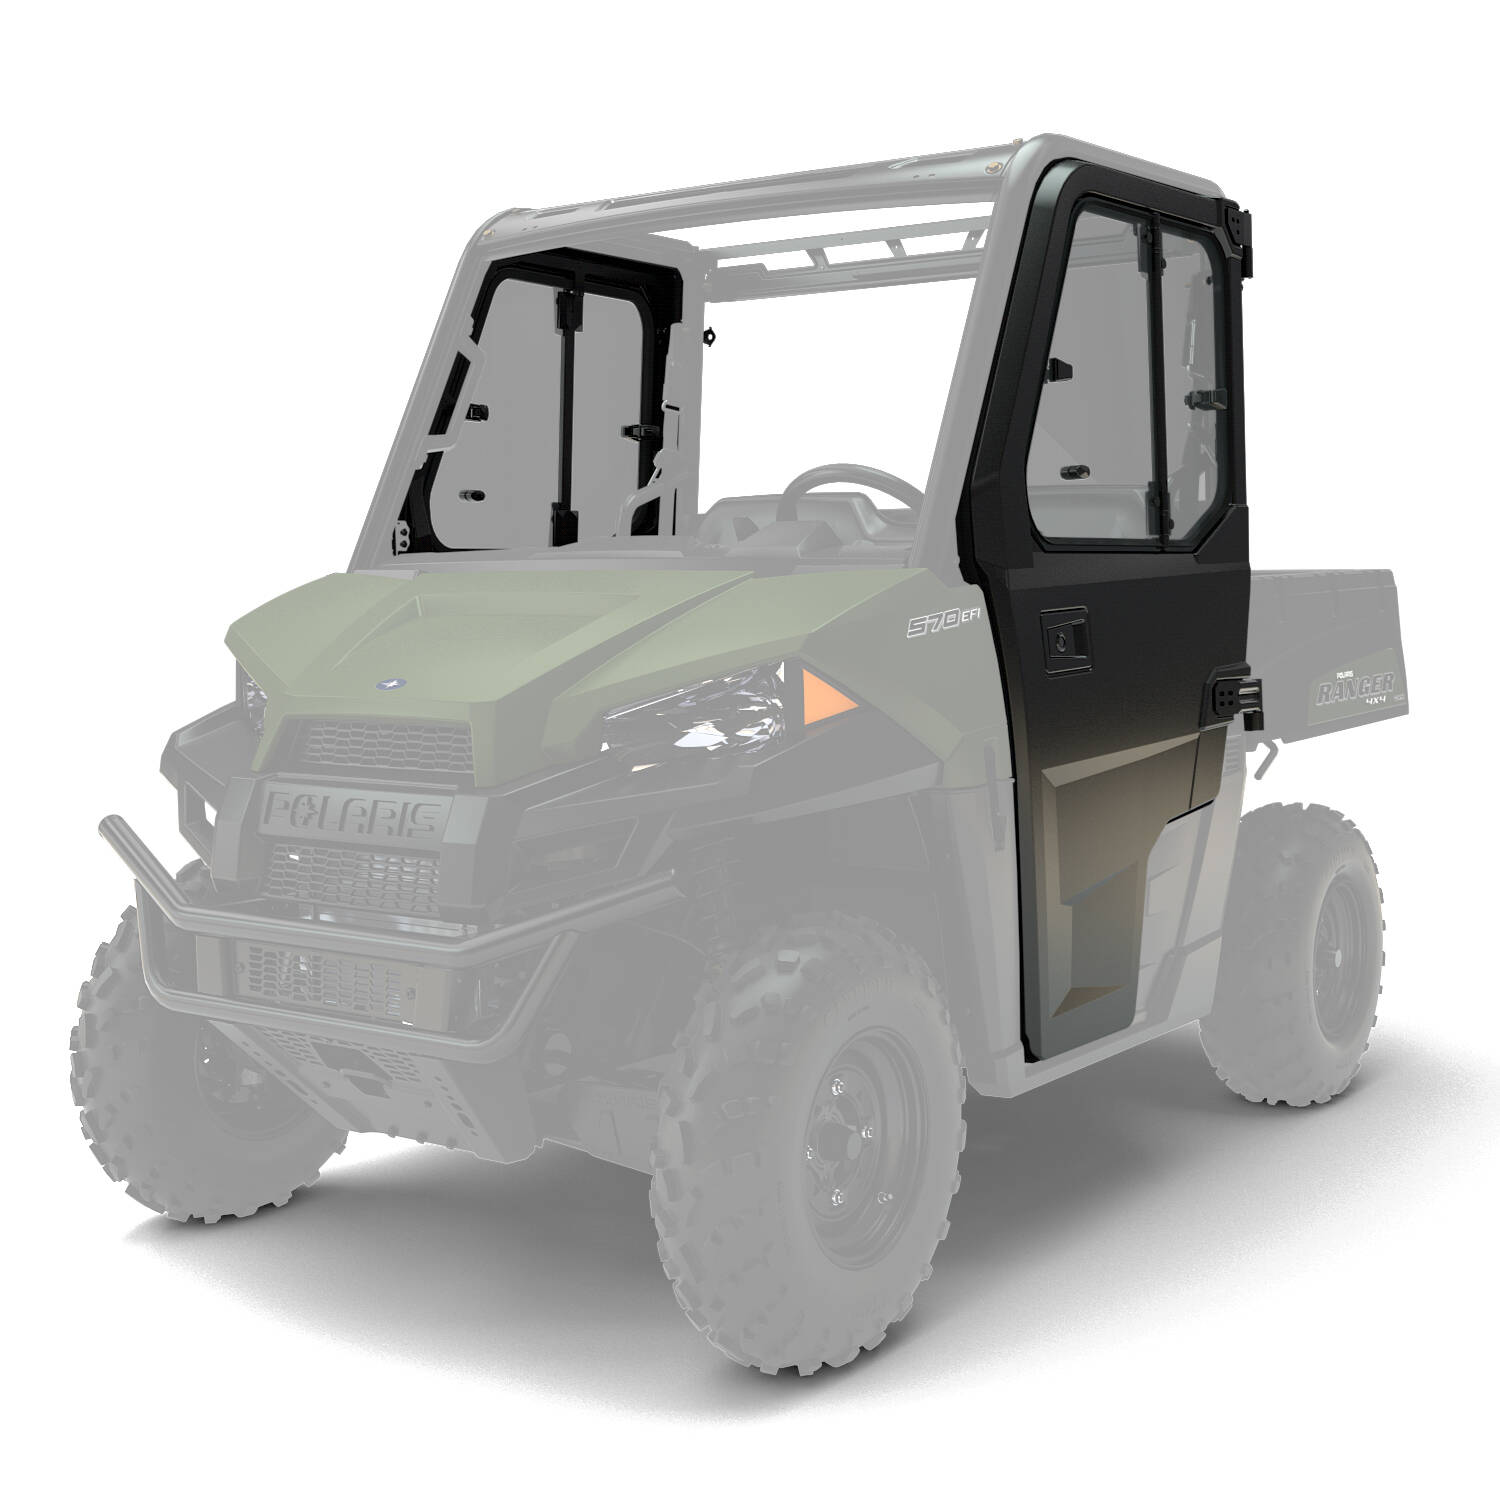 sc 1 st  Polaris RANGER & Hinged Window Doors - Poly | Polaris RANGER pezcame.com